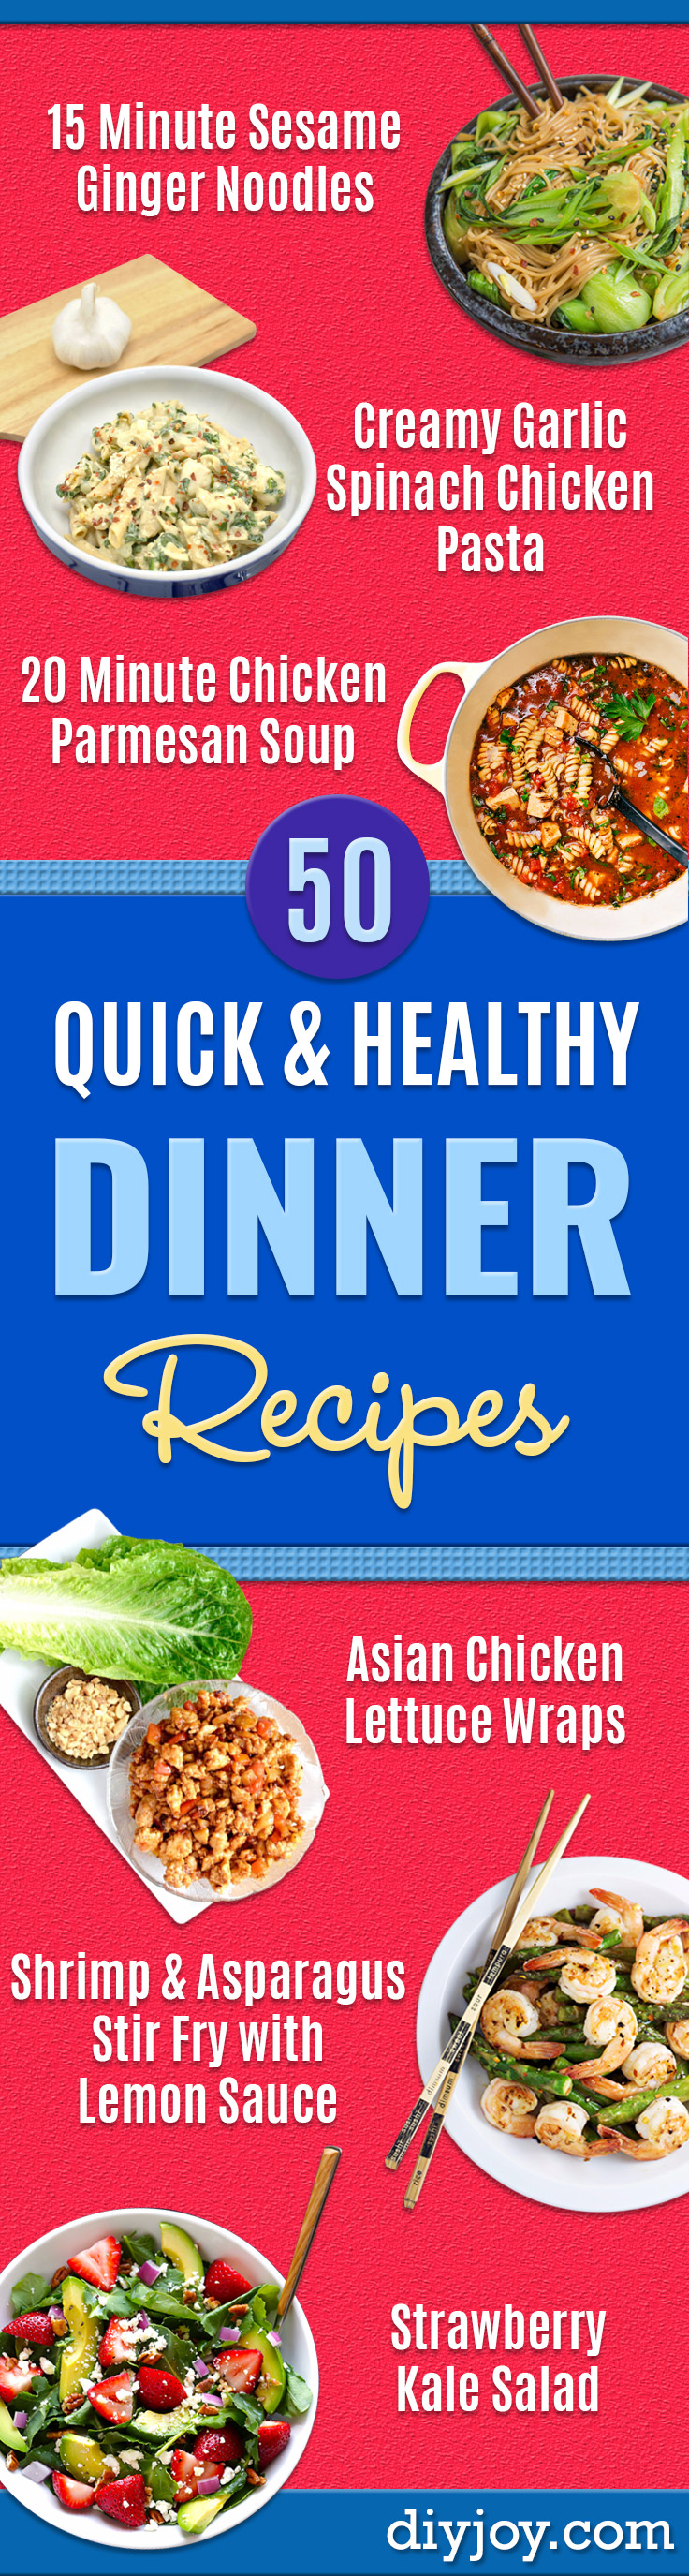 Quick and Healthy Dinner Recipes - Easy and Fast Recipe Ideas for Dinners at Home - Chicken, Beef, Ground Meat, Pasta and Vegetarian Options - Cheap Dinner Ideas for Family, for Two for Last Minute Cooking